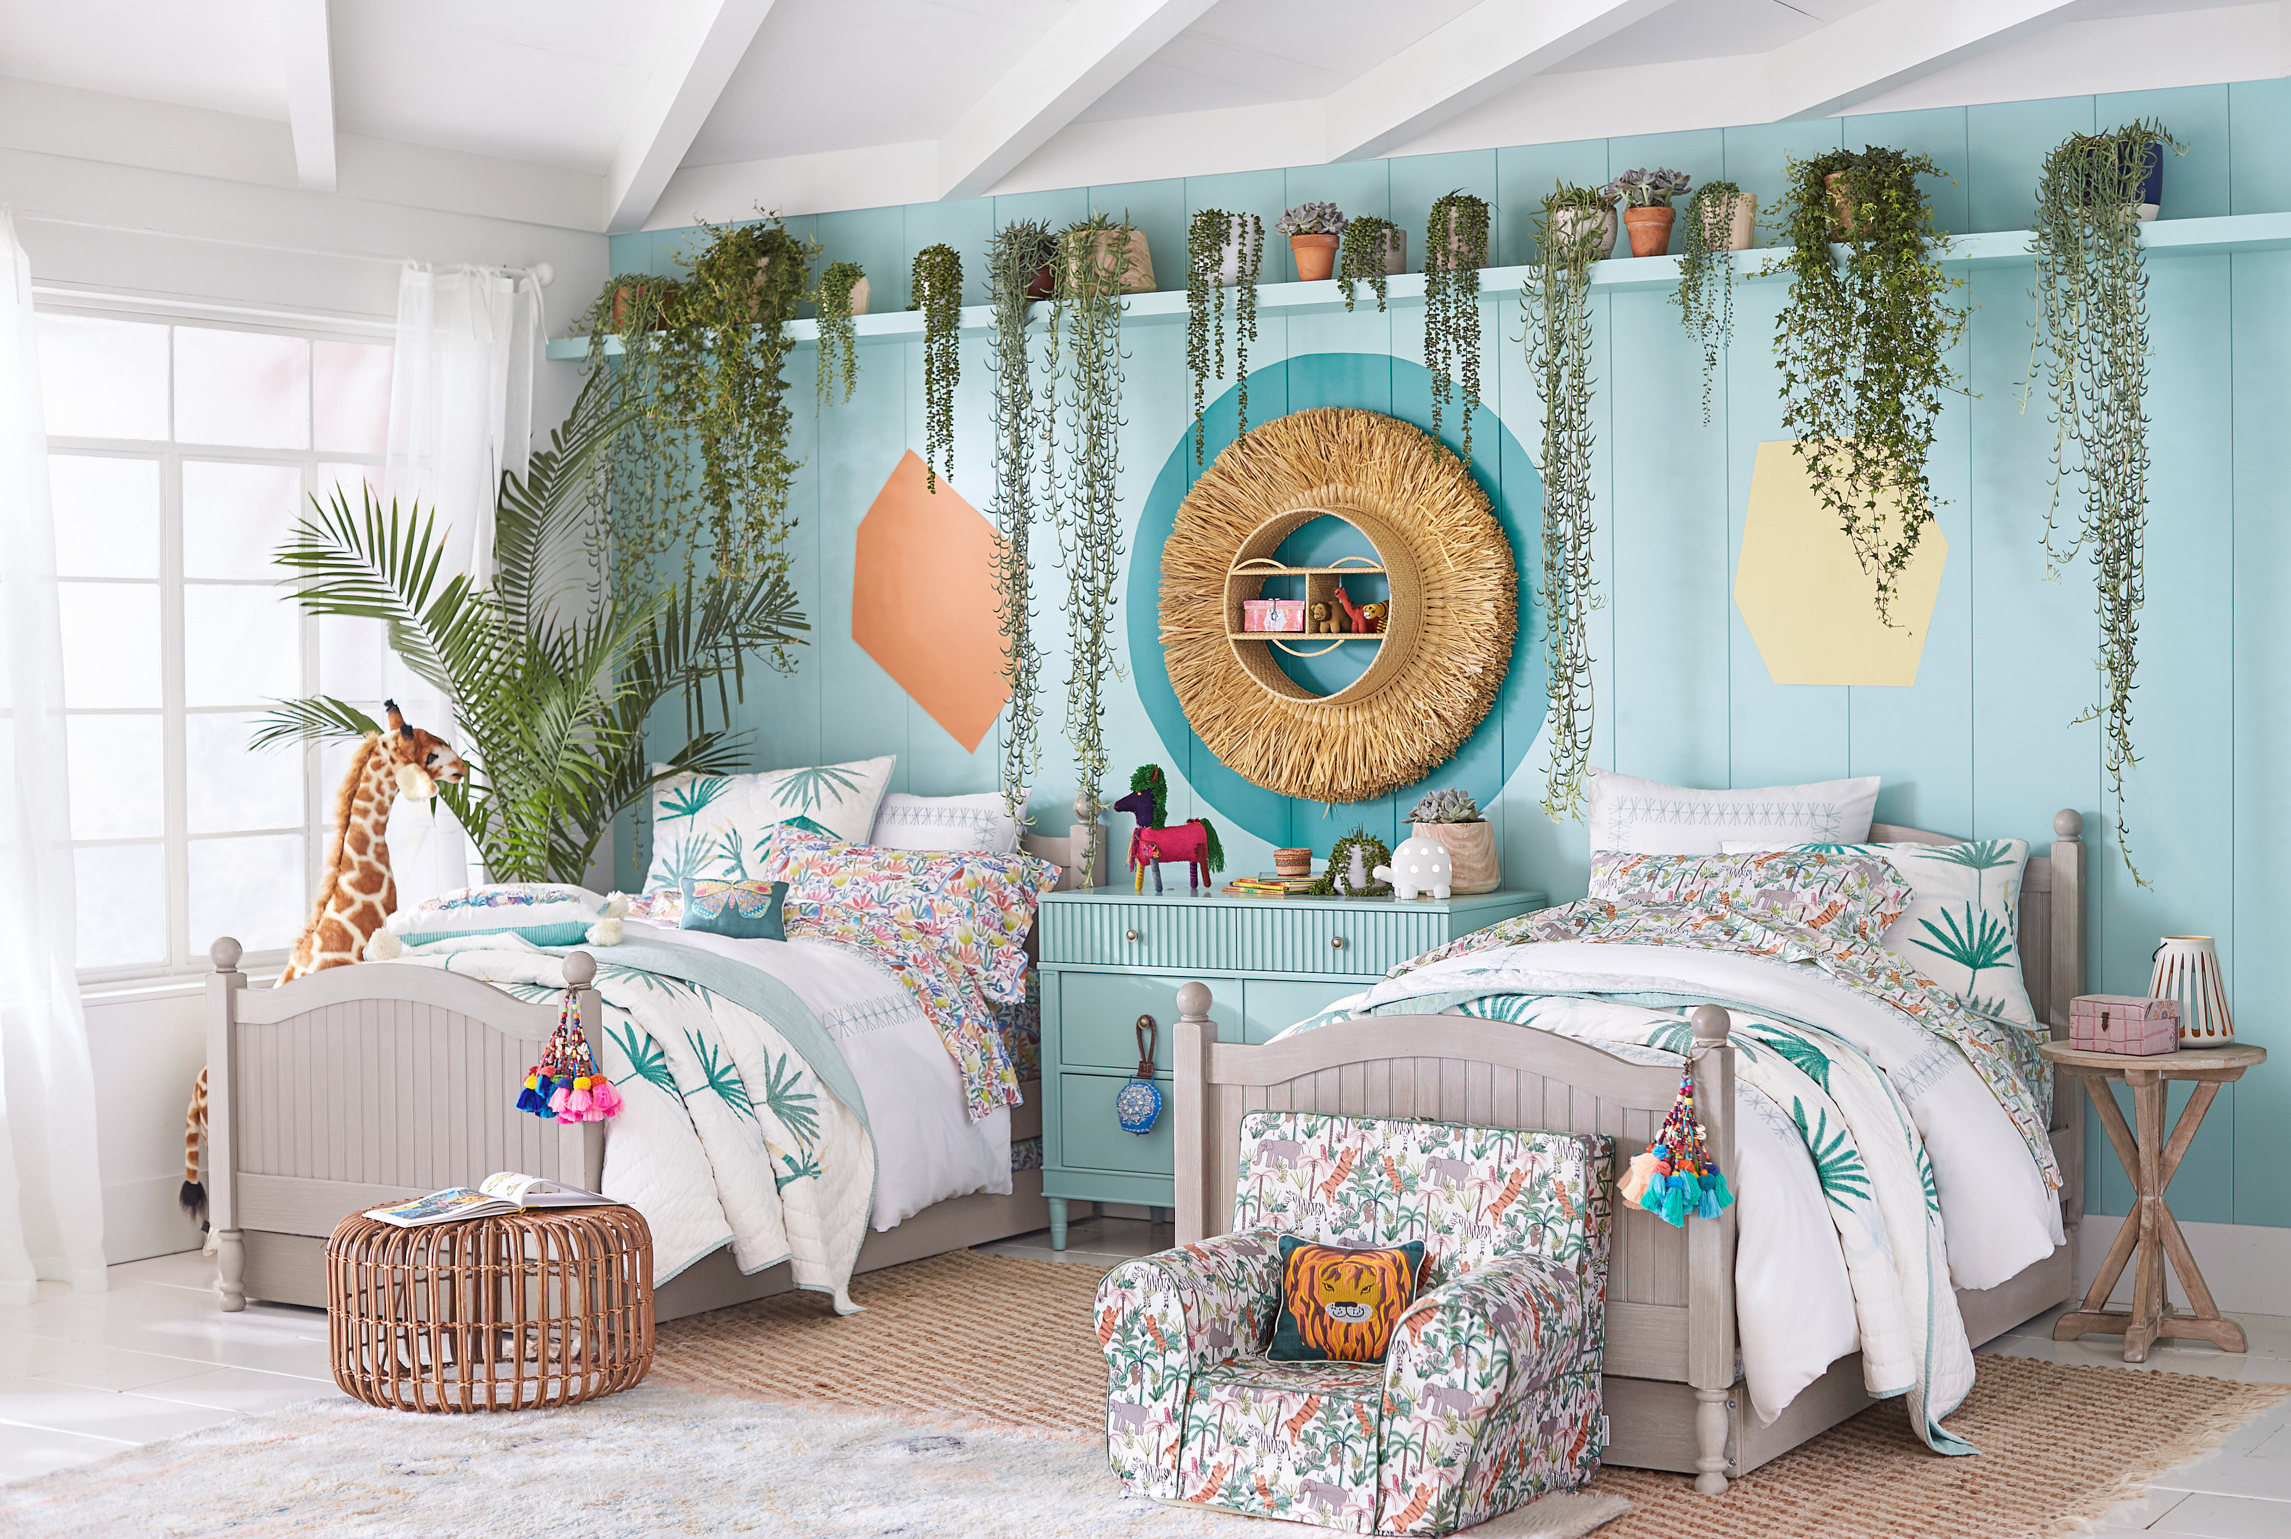 POTTERY BARN KIDS UNVEILS BRIGHT BOHEMIAN COLLECTION WITH DESIGNER ...